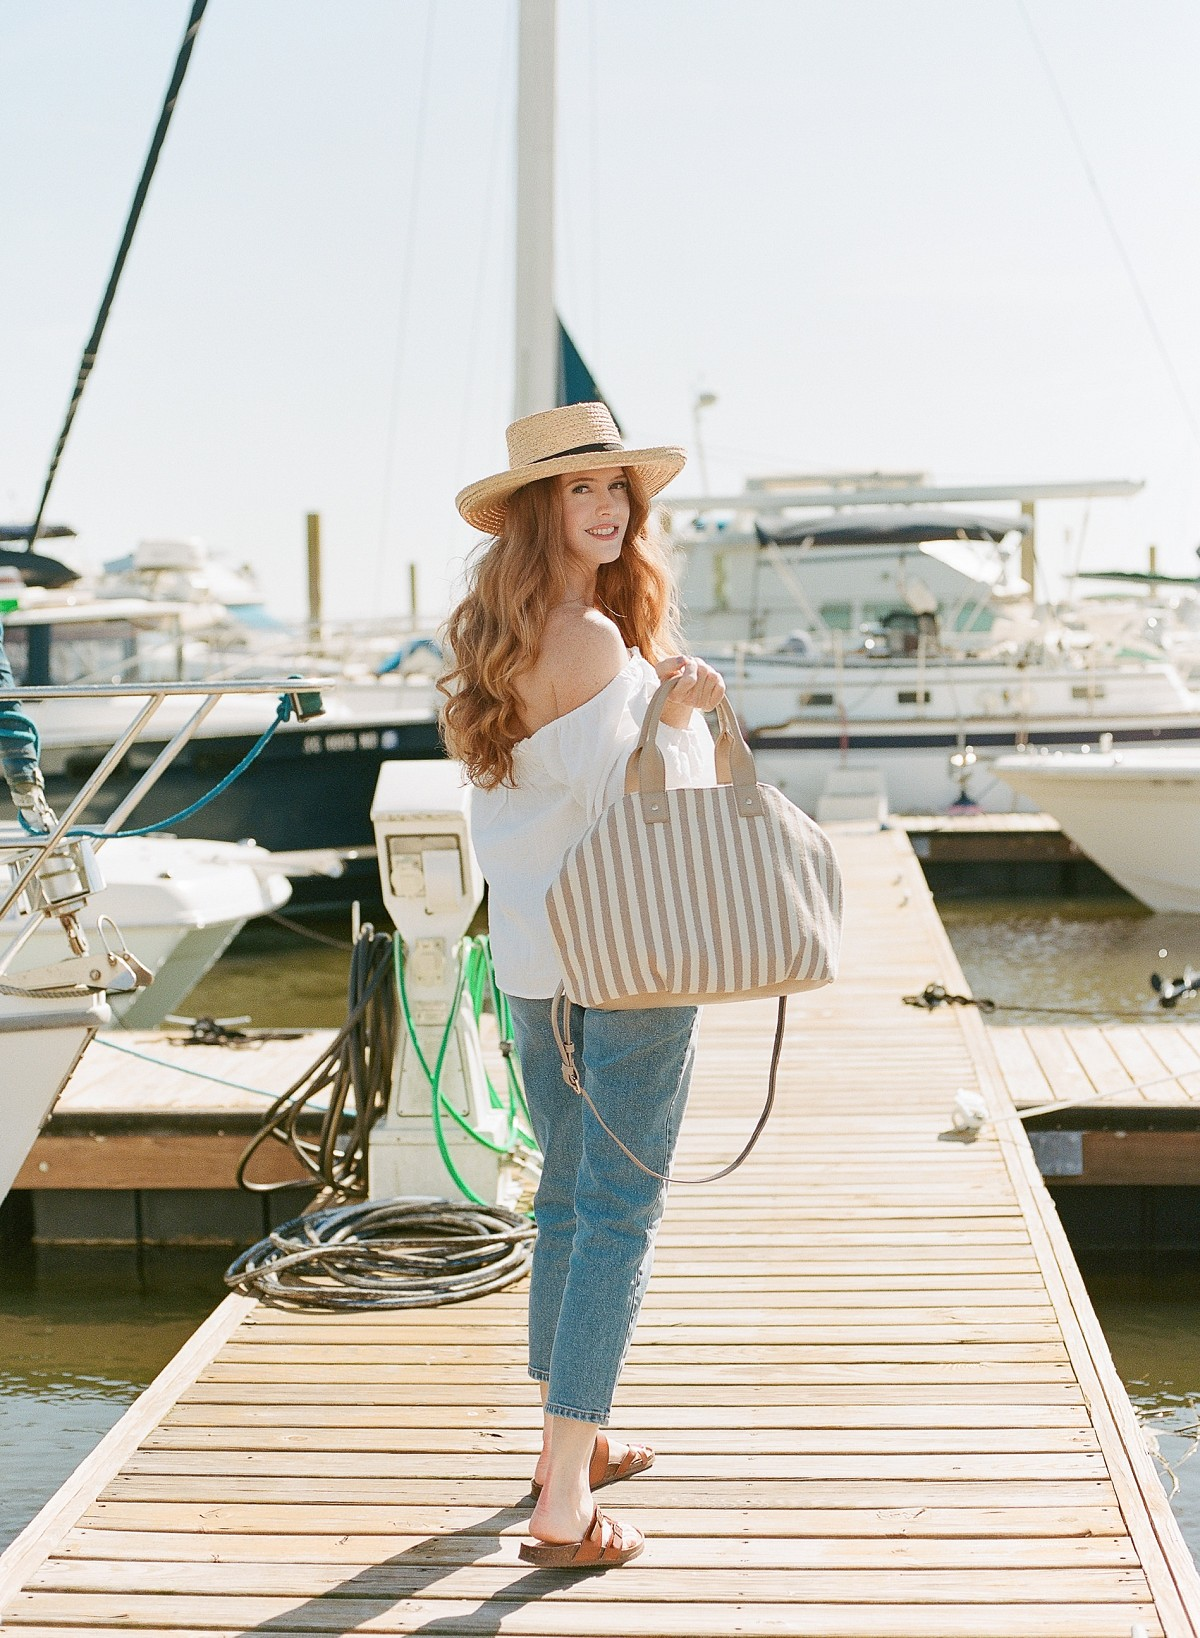 8 OUTFITS YOU NEED TO PACK FOR YOUR HONEYMOON!